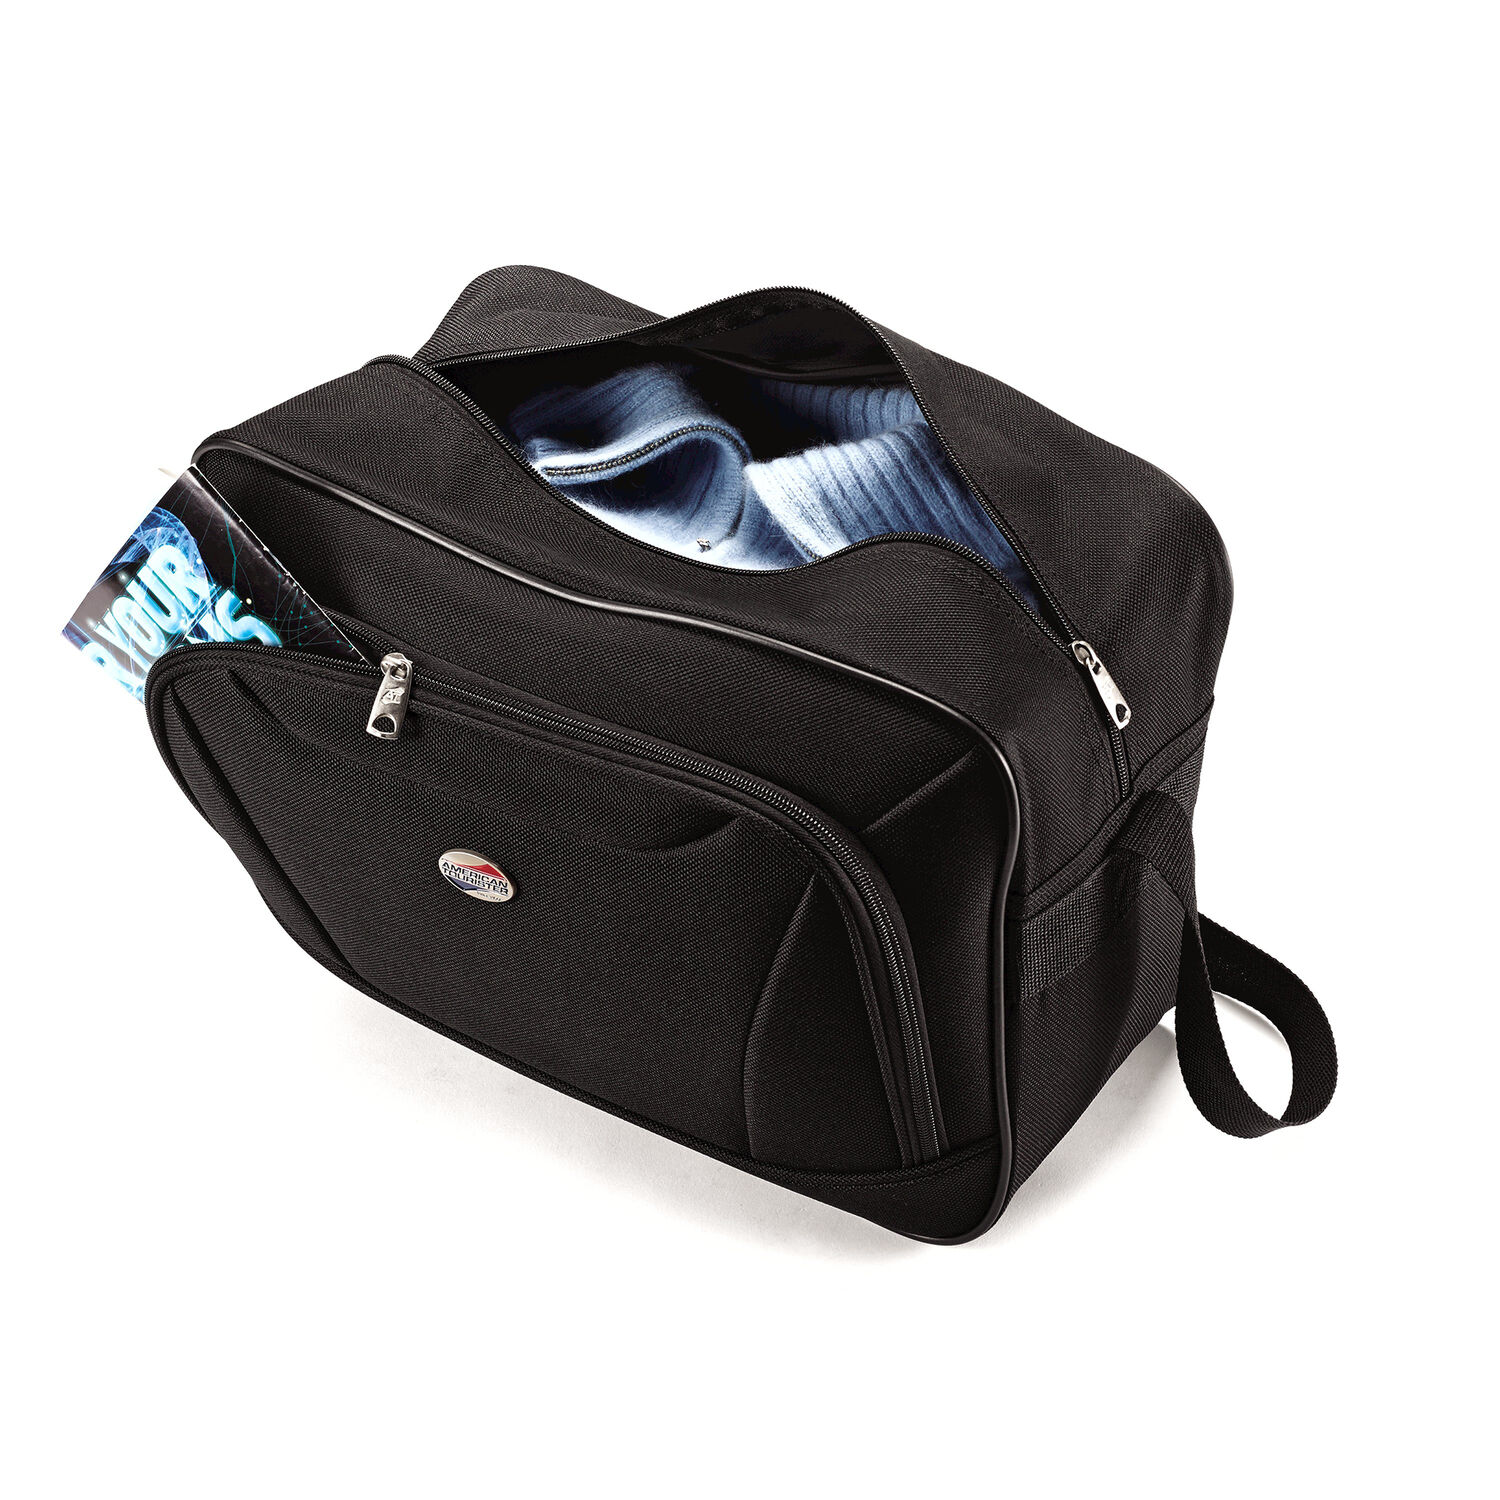 c035aaae6 American Tourister Fieldbrook II 2 Piece Set in the color Black.